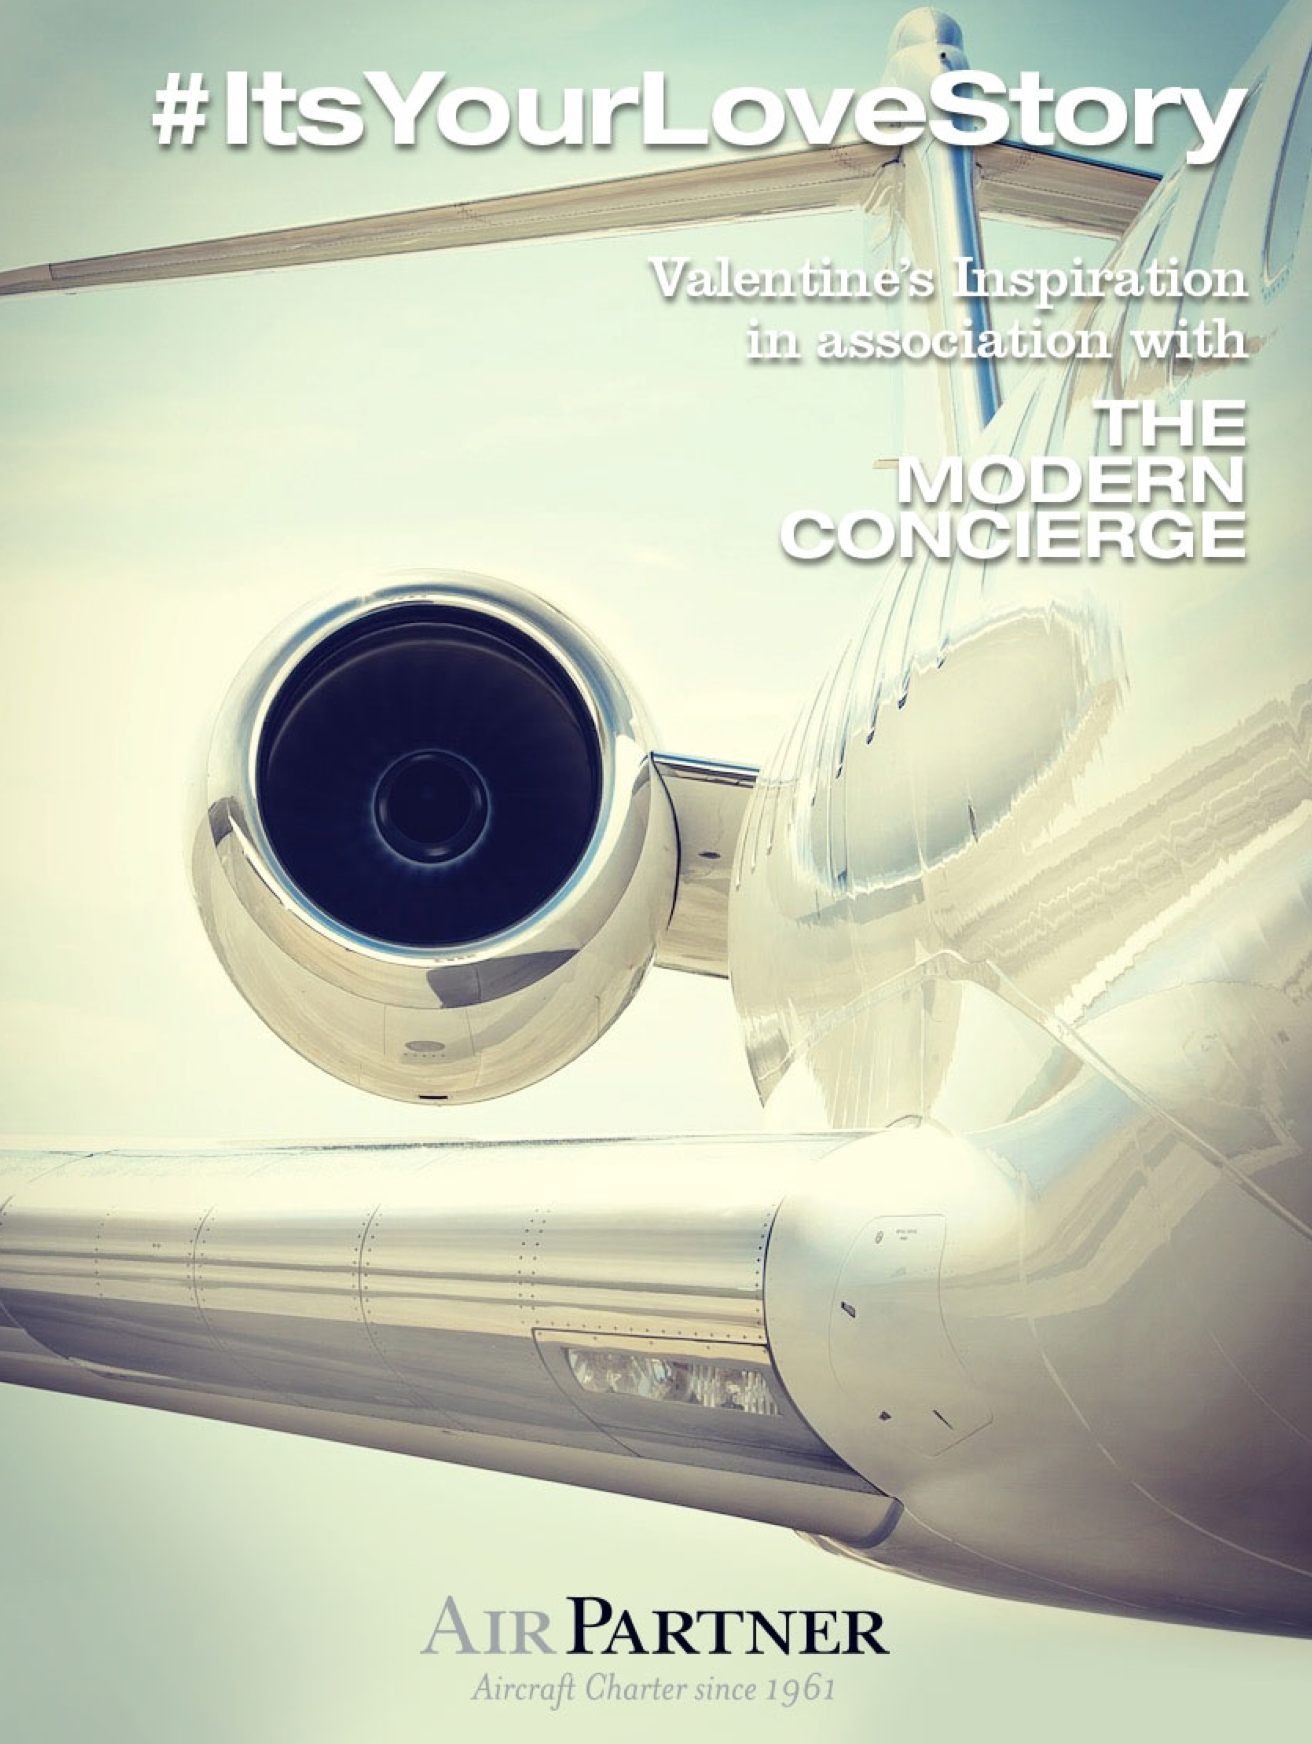 Click here to see the #ItsYourLoveStory private jet adventure collections